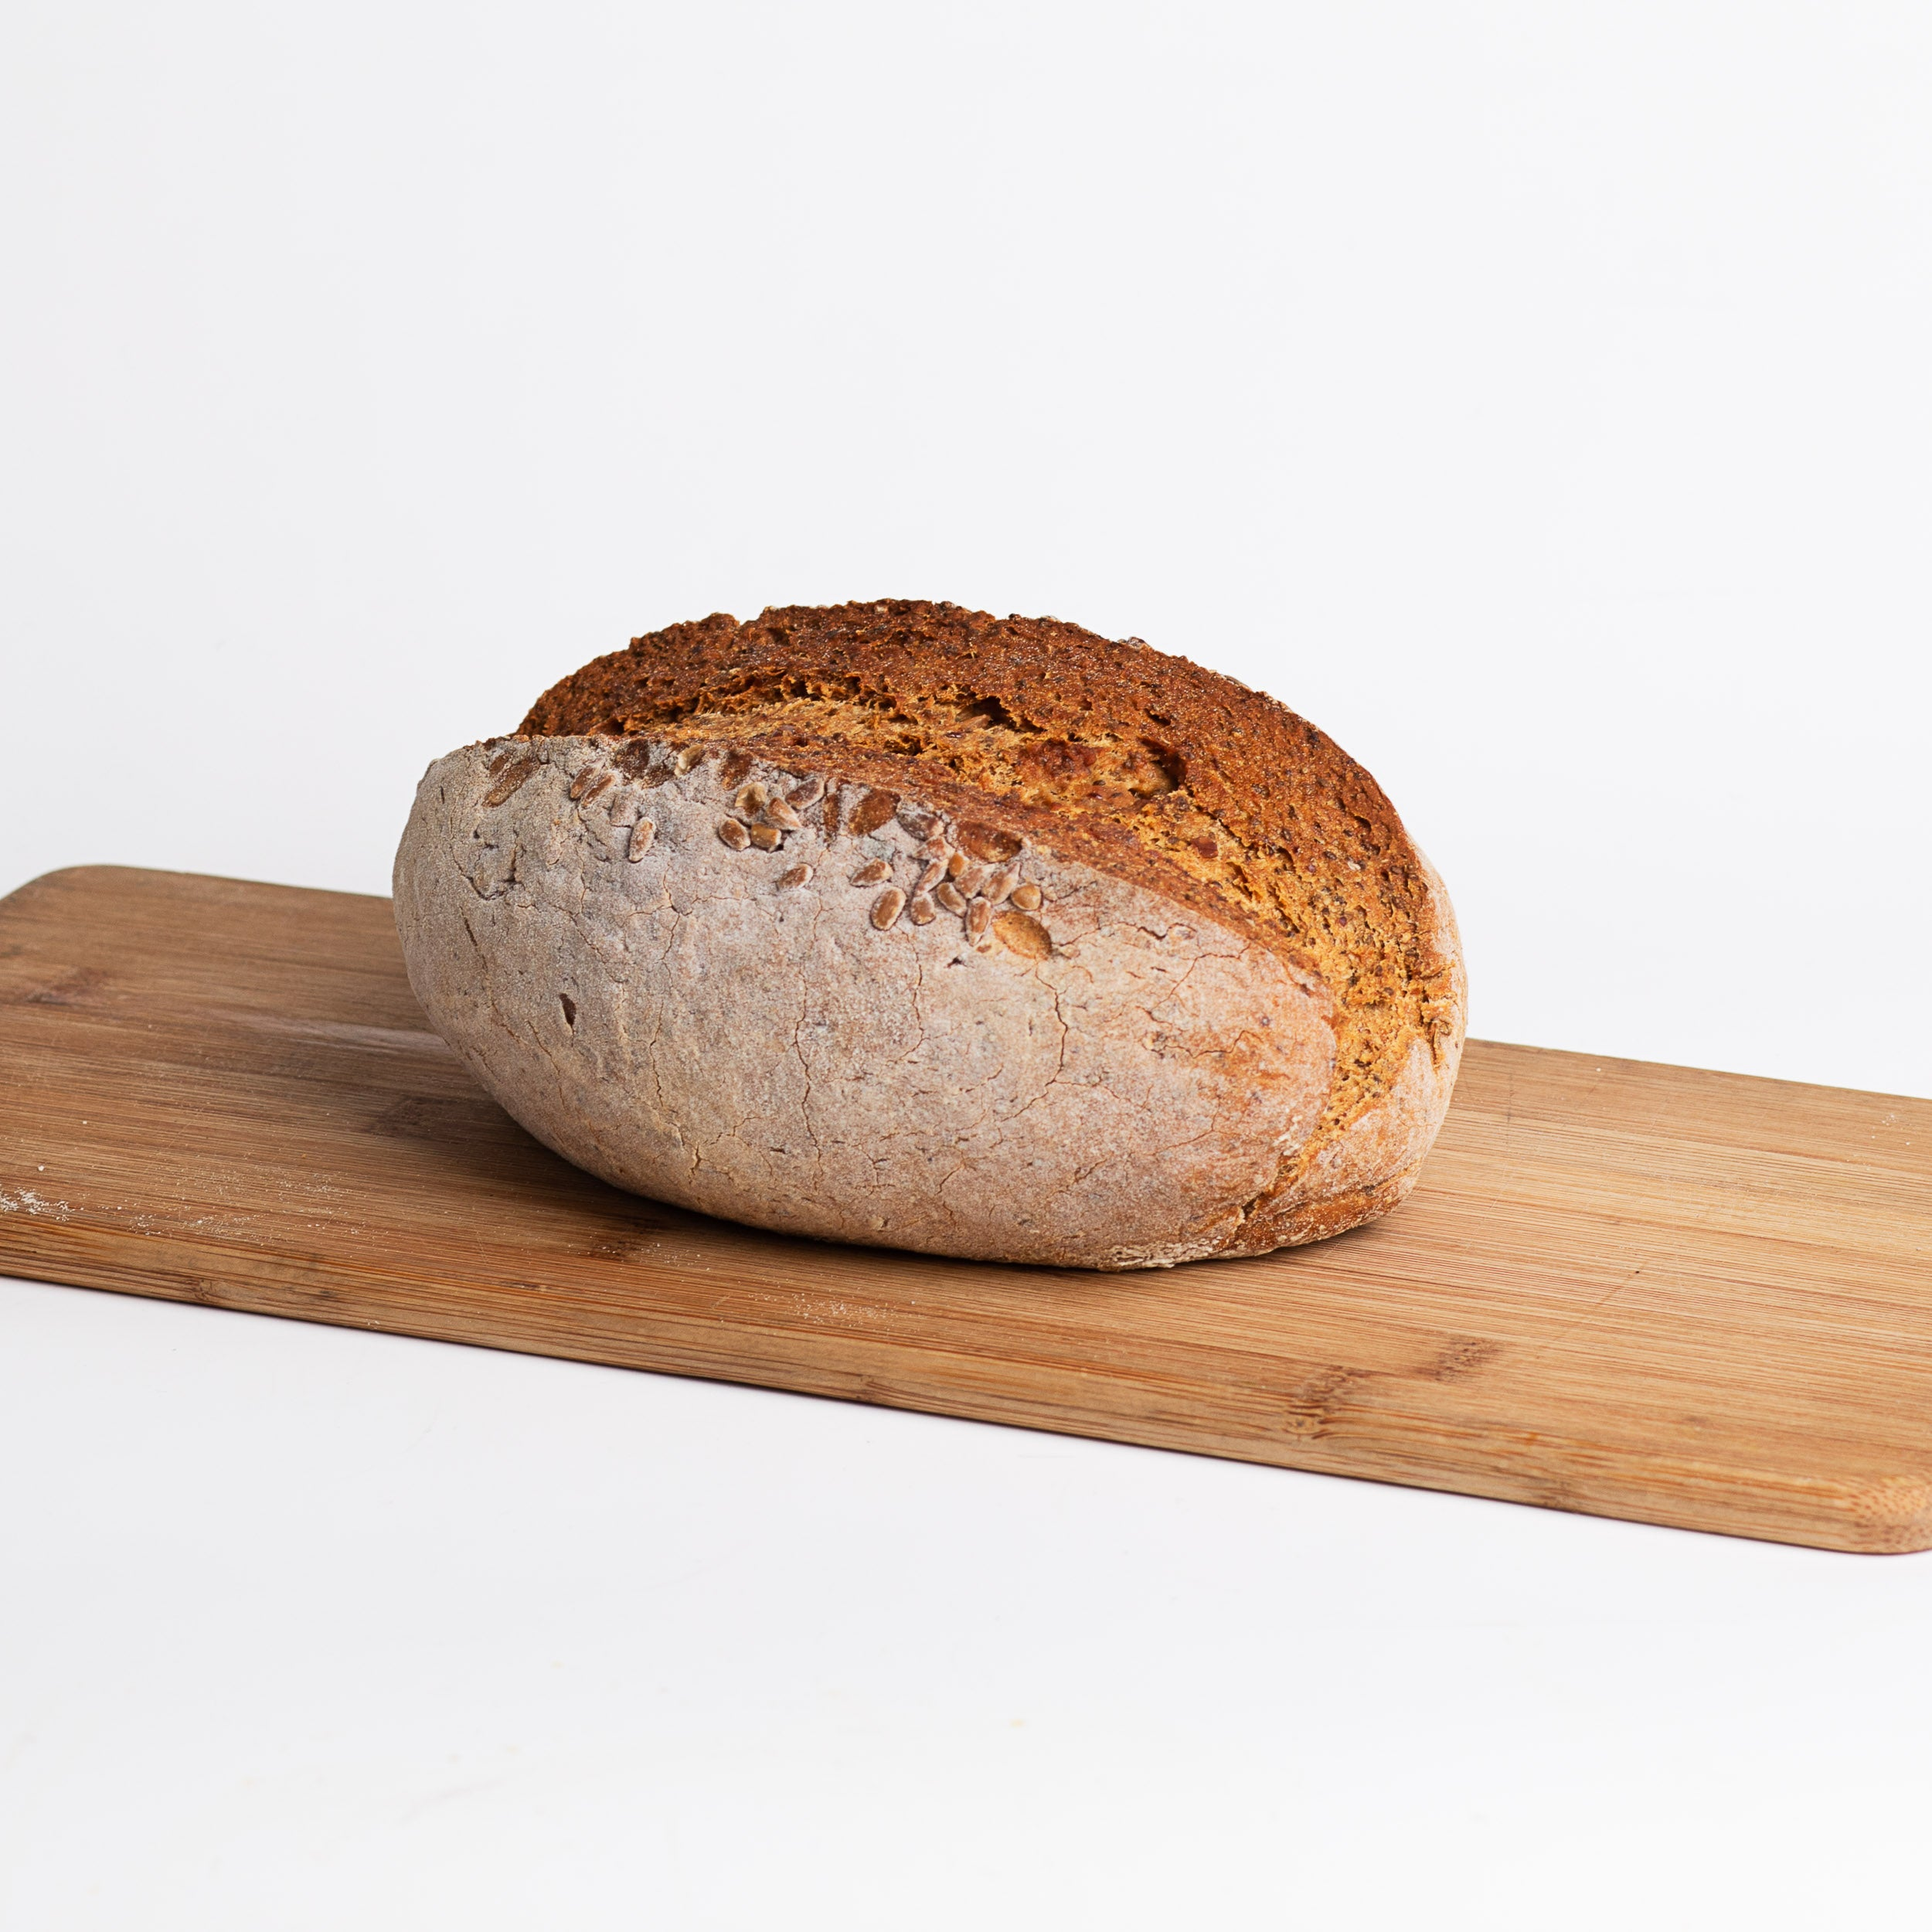 Baked Gluten Free Super Seedy Loaf